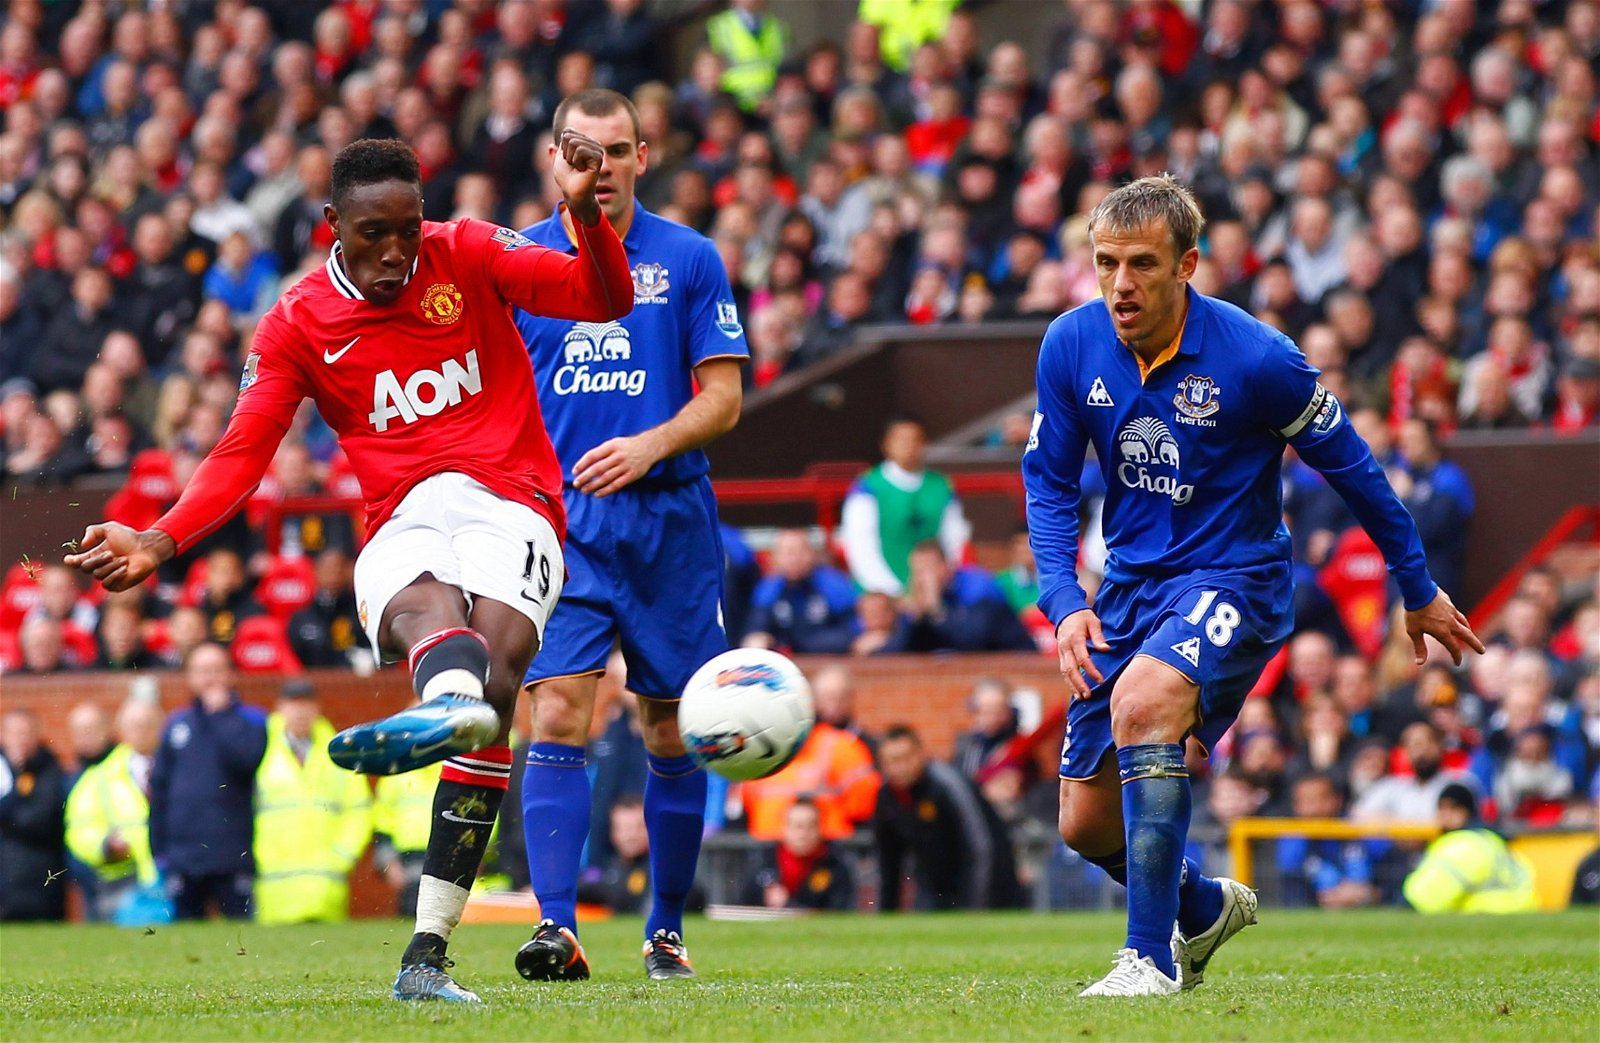 Danny Welbeck scored for Man United against Everton at Old trafford